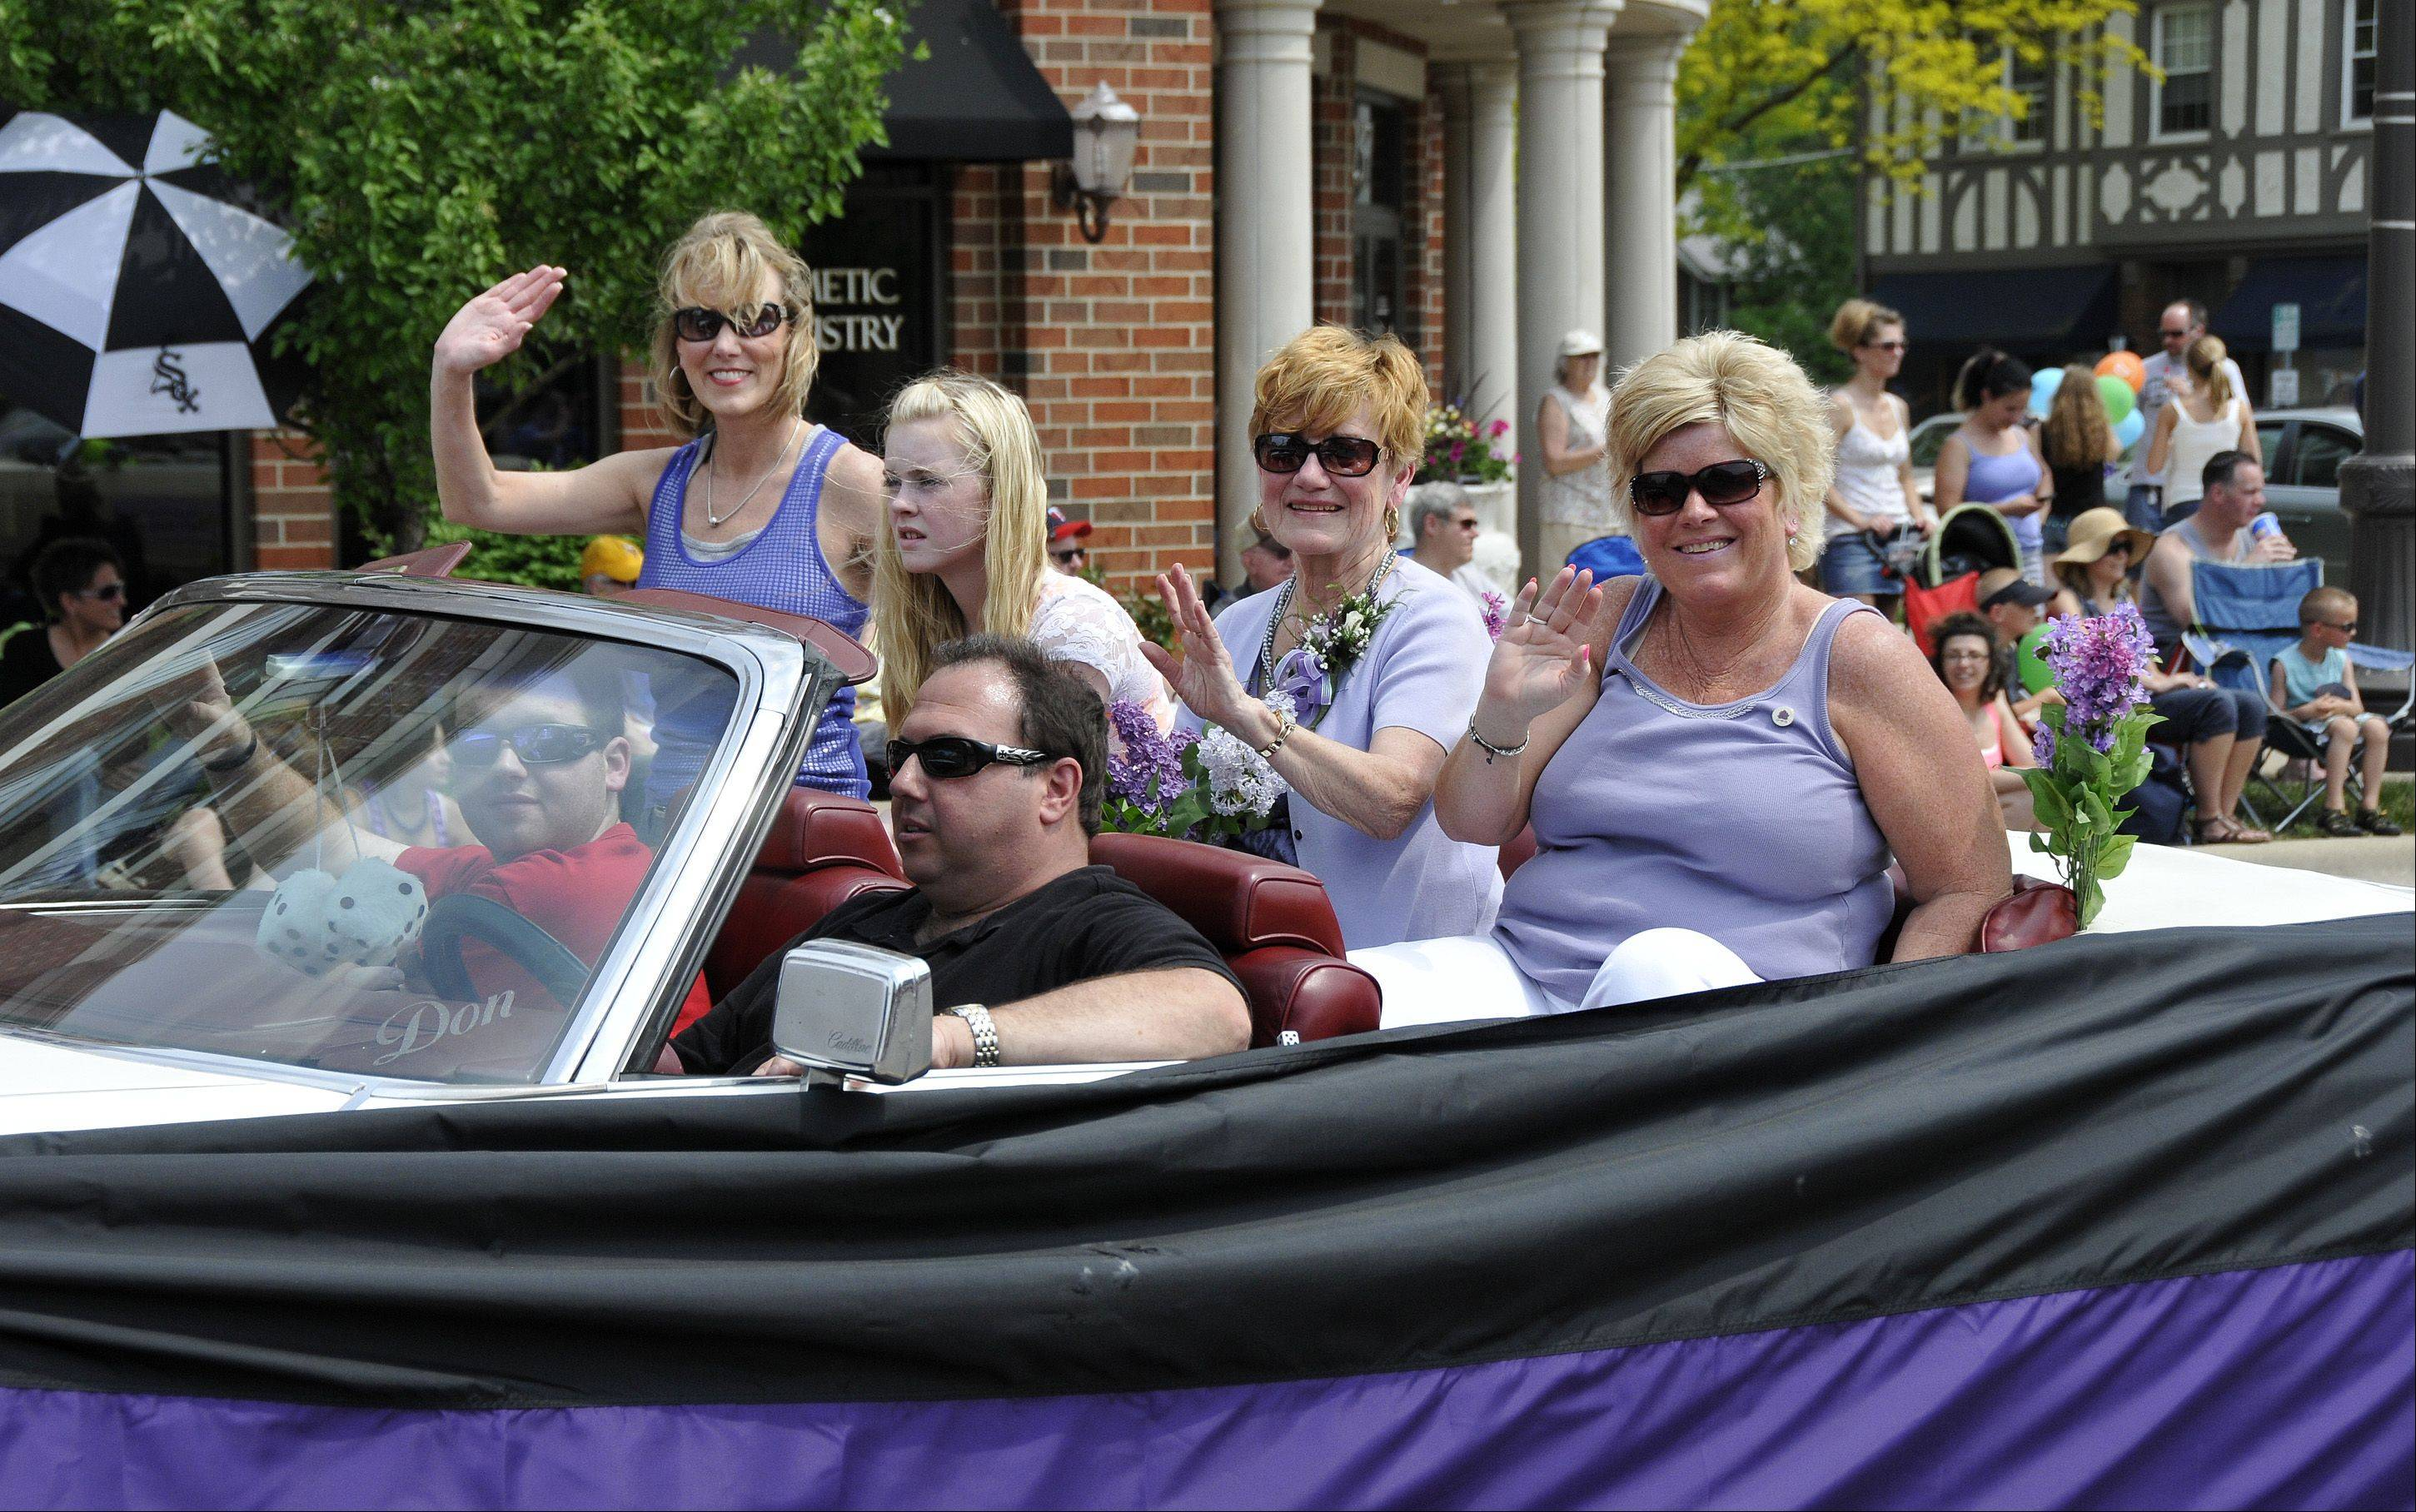 The 59th annual Lilac Parade stepped off Sunday on Main Street in Lombard. The family of Lombard's late mayor, Bill Mueller, were the grand marshals of the parade. Left to right in the back seat are Bill's daughter, Donna Fruehe, his granddaughter, Ashley Fruehe, his wife, Eileen Mueller, and his daughter, Debbie Rapata.